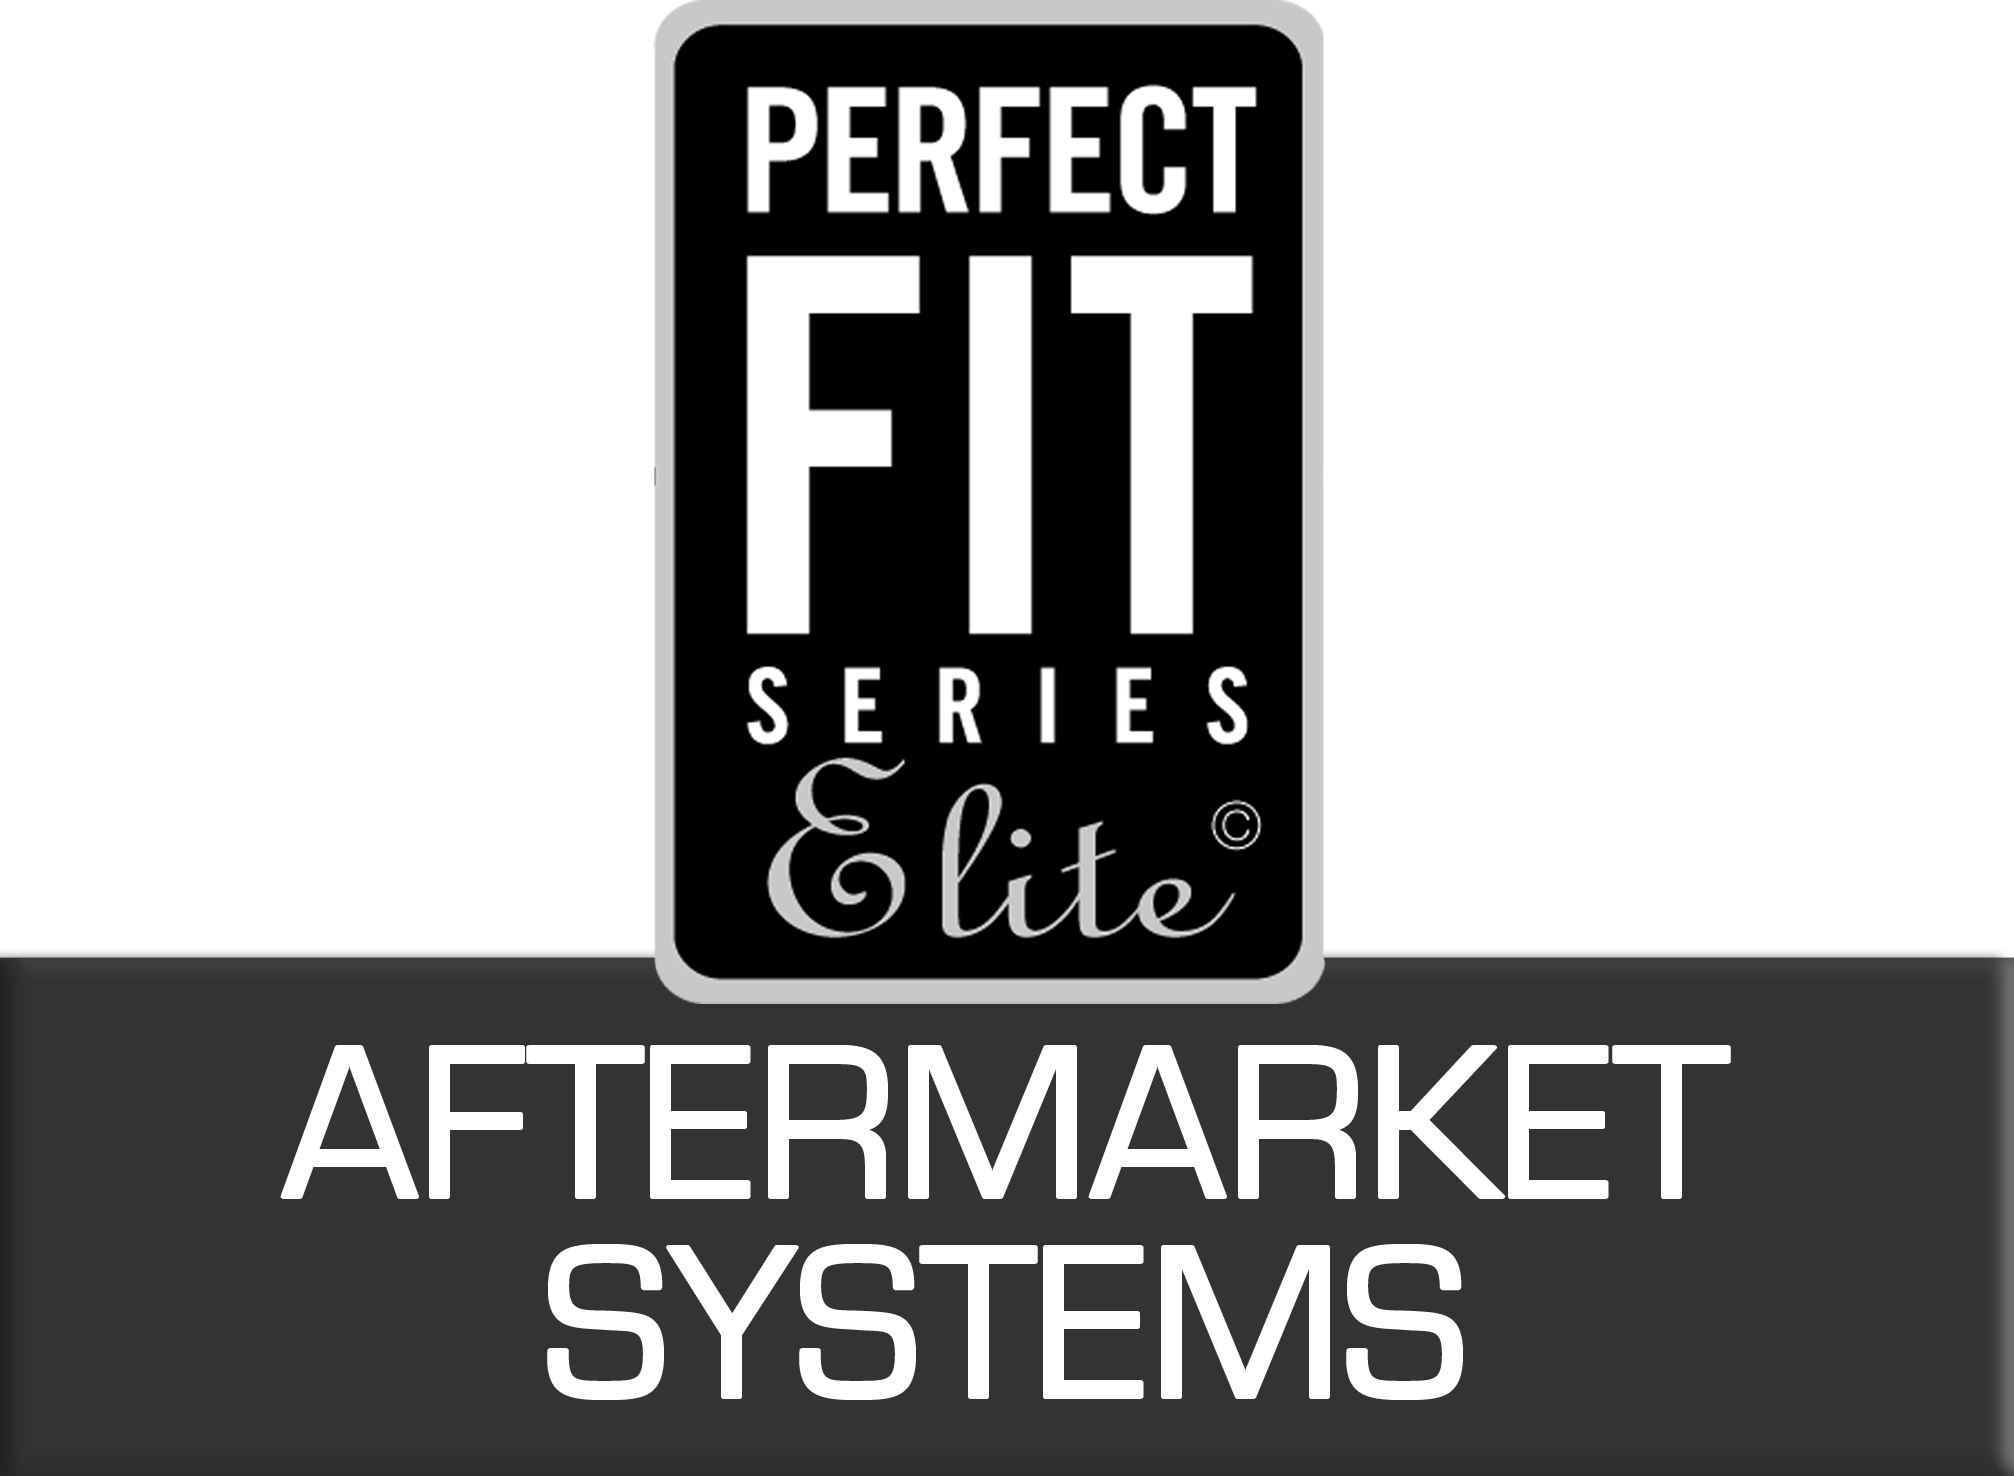 Aftermarket Systems